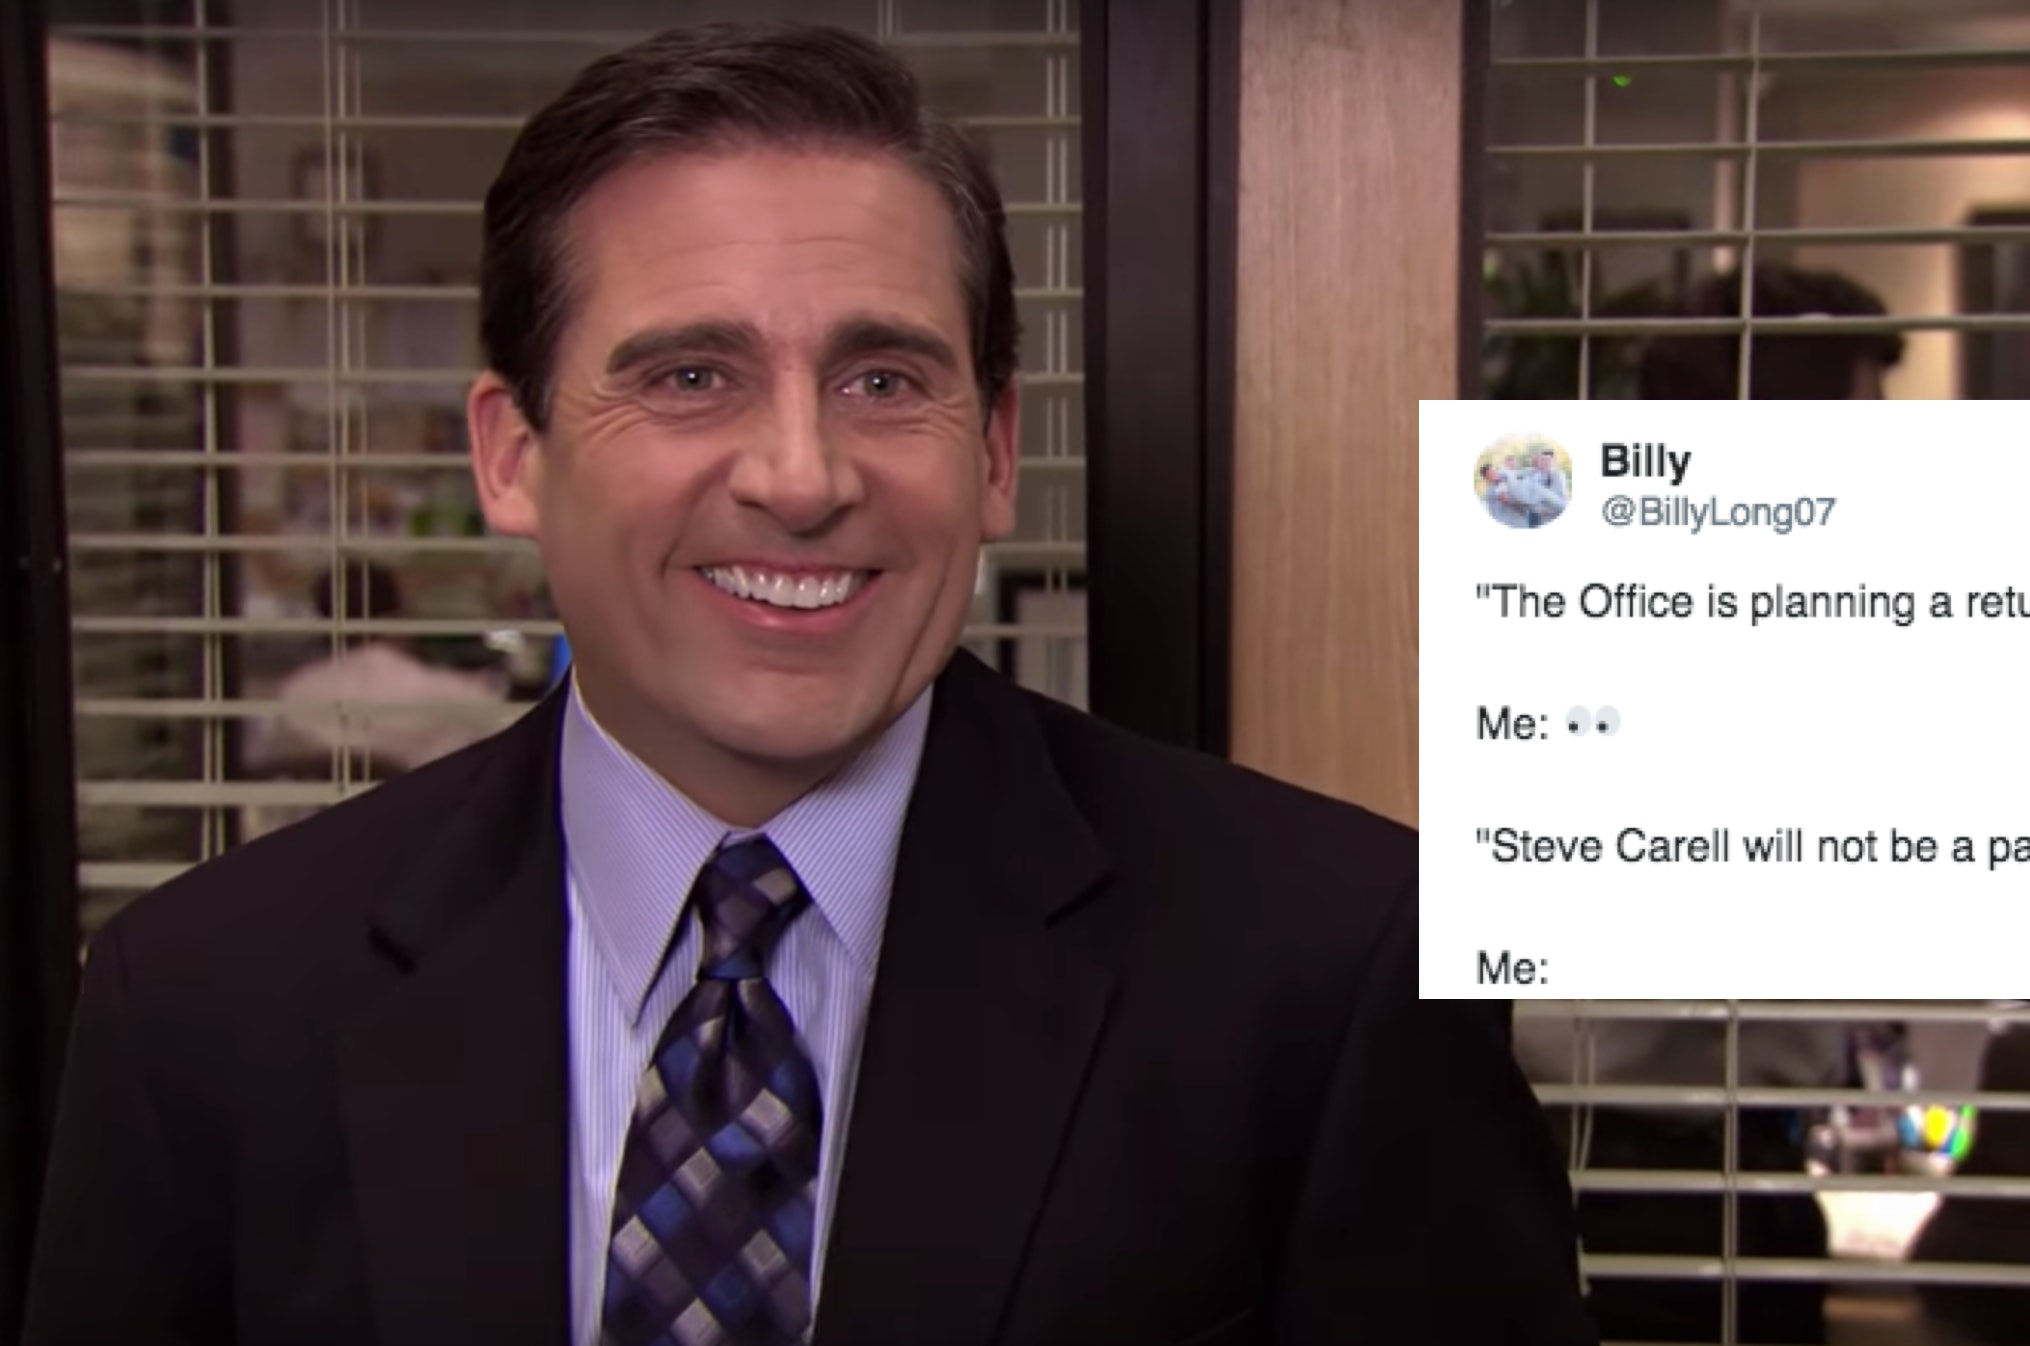 The Office Revival Being Considered at NBC